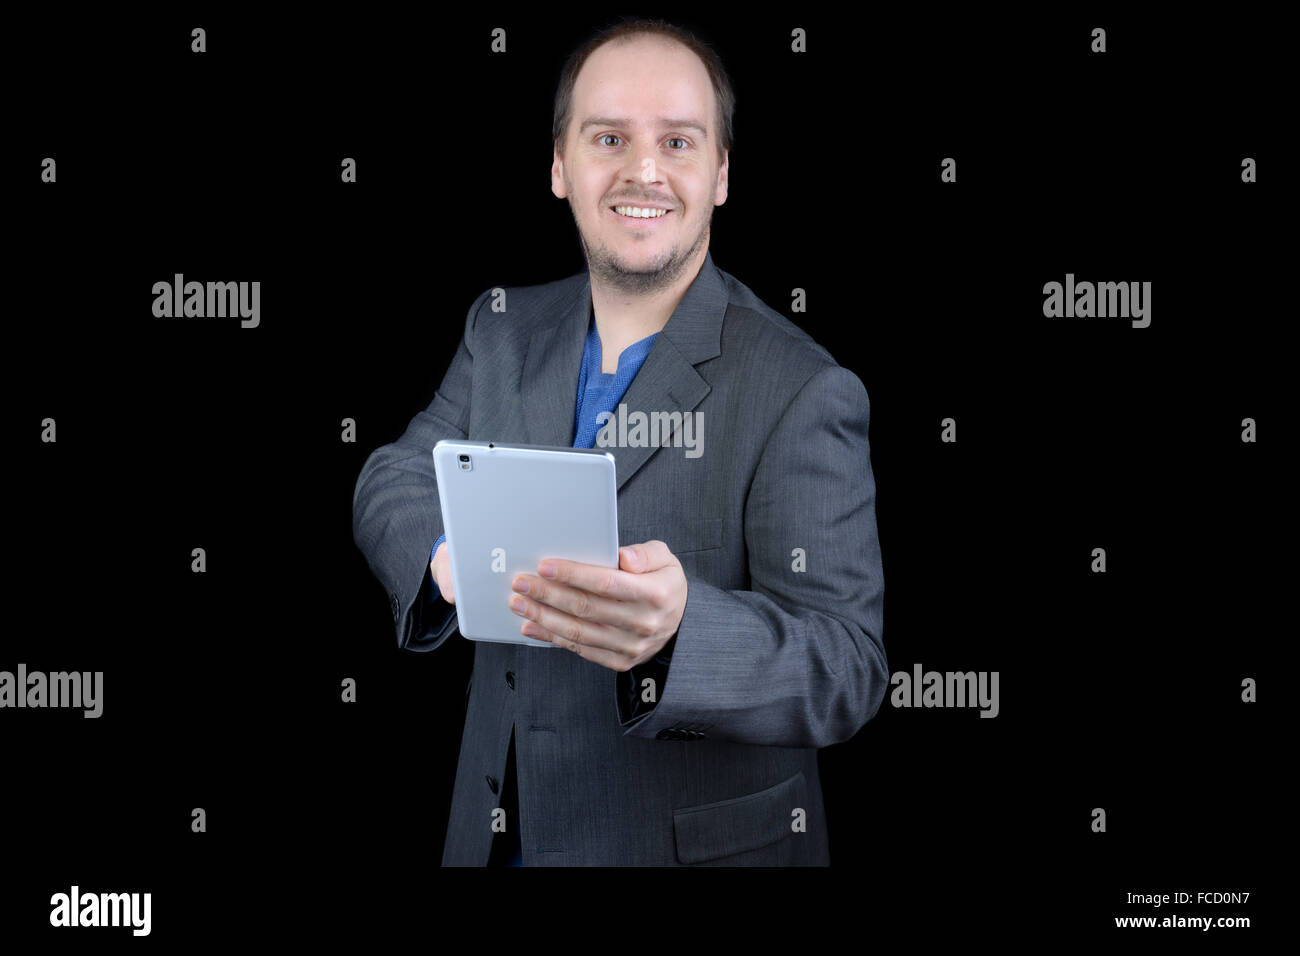 young man dark gray suit smiling pointing tablet - Stock Photo